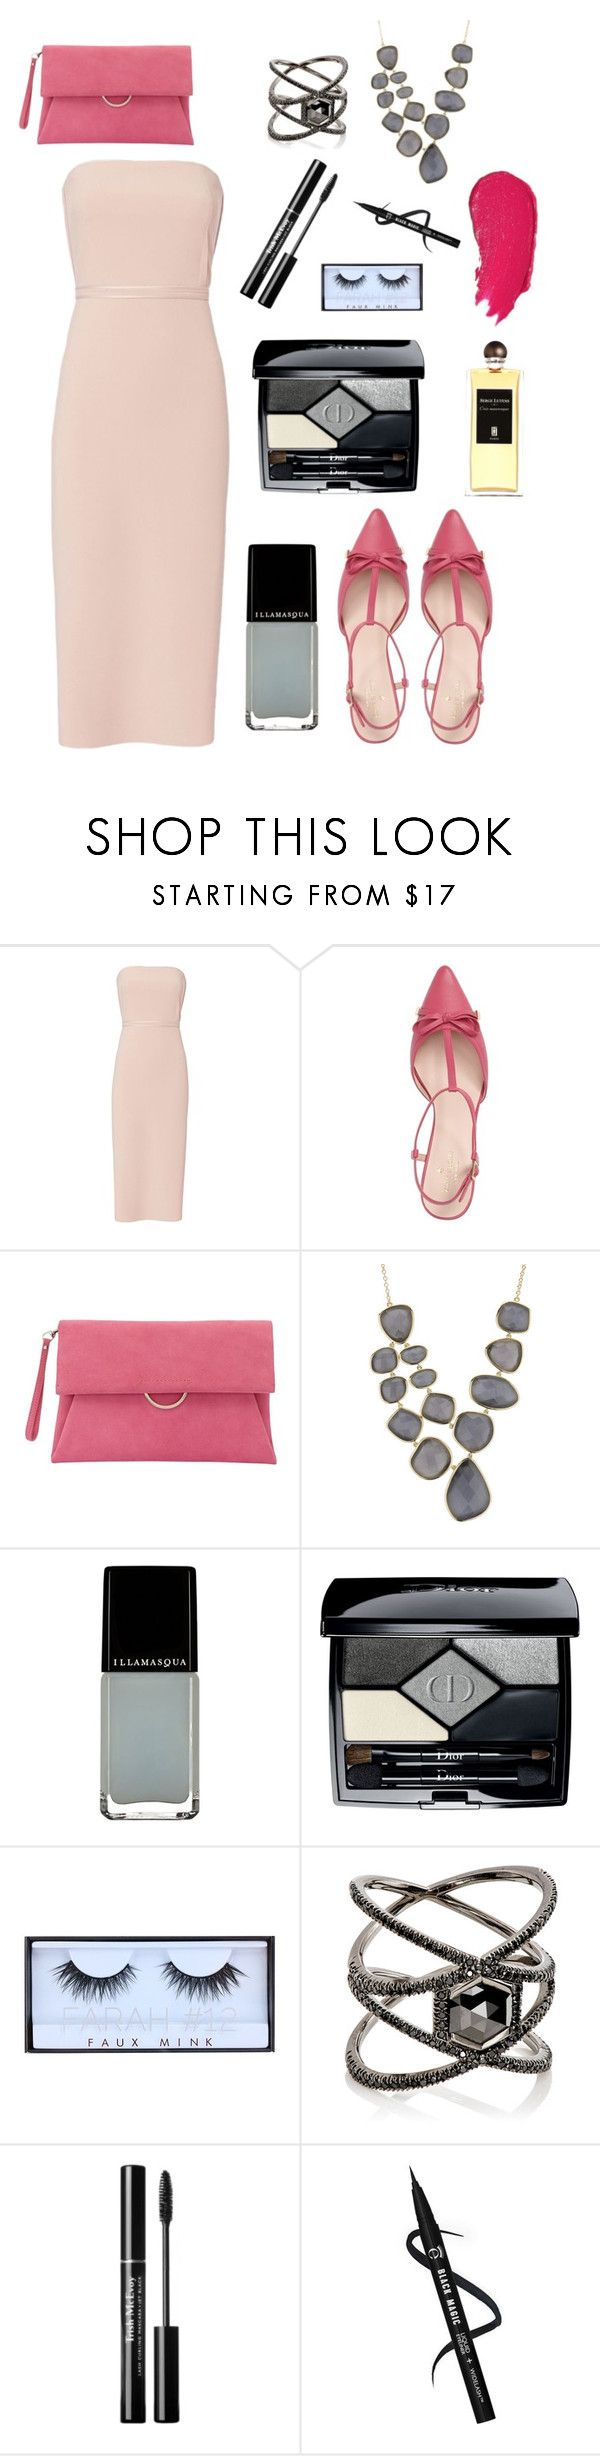 """Pink Spring"" by annabellalovesfashion ❤ liked on Polyvore featuring Elizabeth and James, Kate Spade, Mint Velvet, Marcia Moran, Illamasqua, Christian Dior, Huda Beauty, Eva Fehren, Lumene and Serge Lutens"